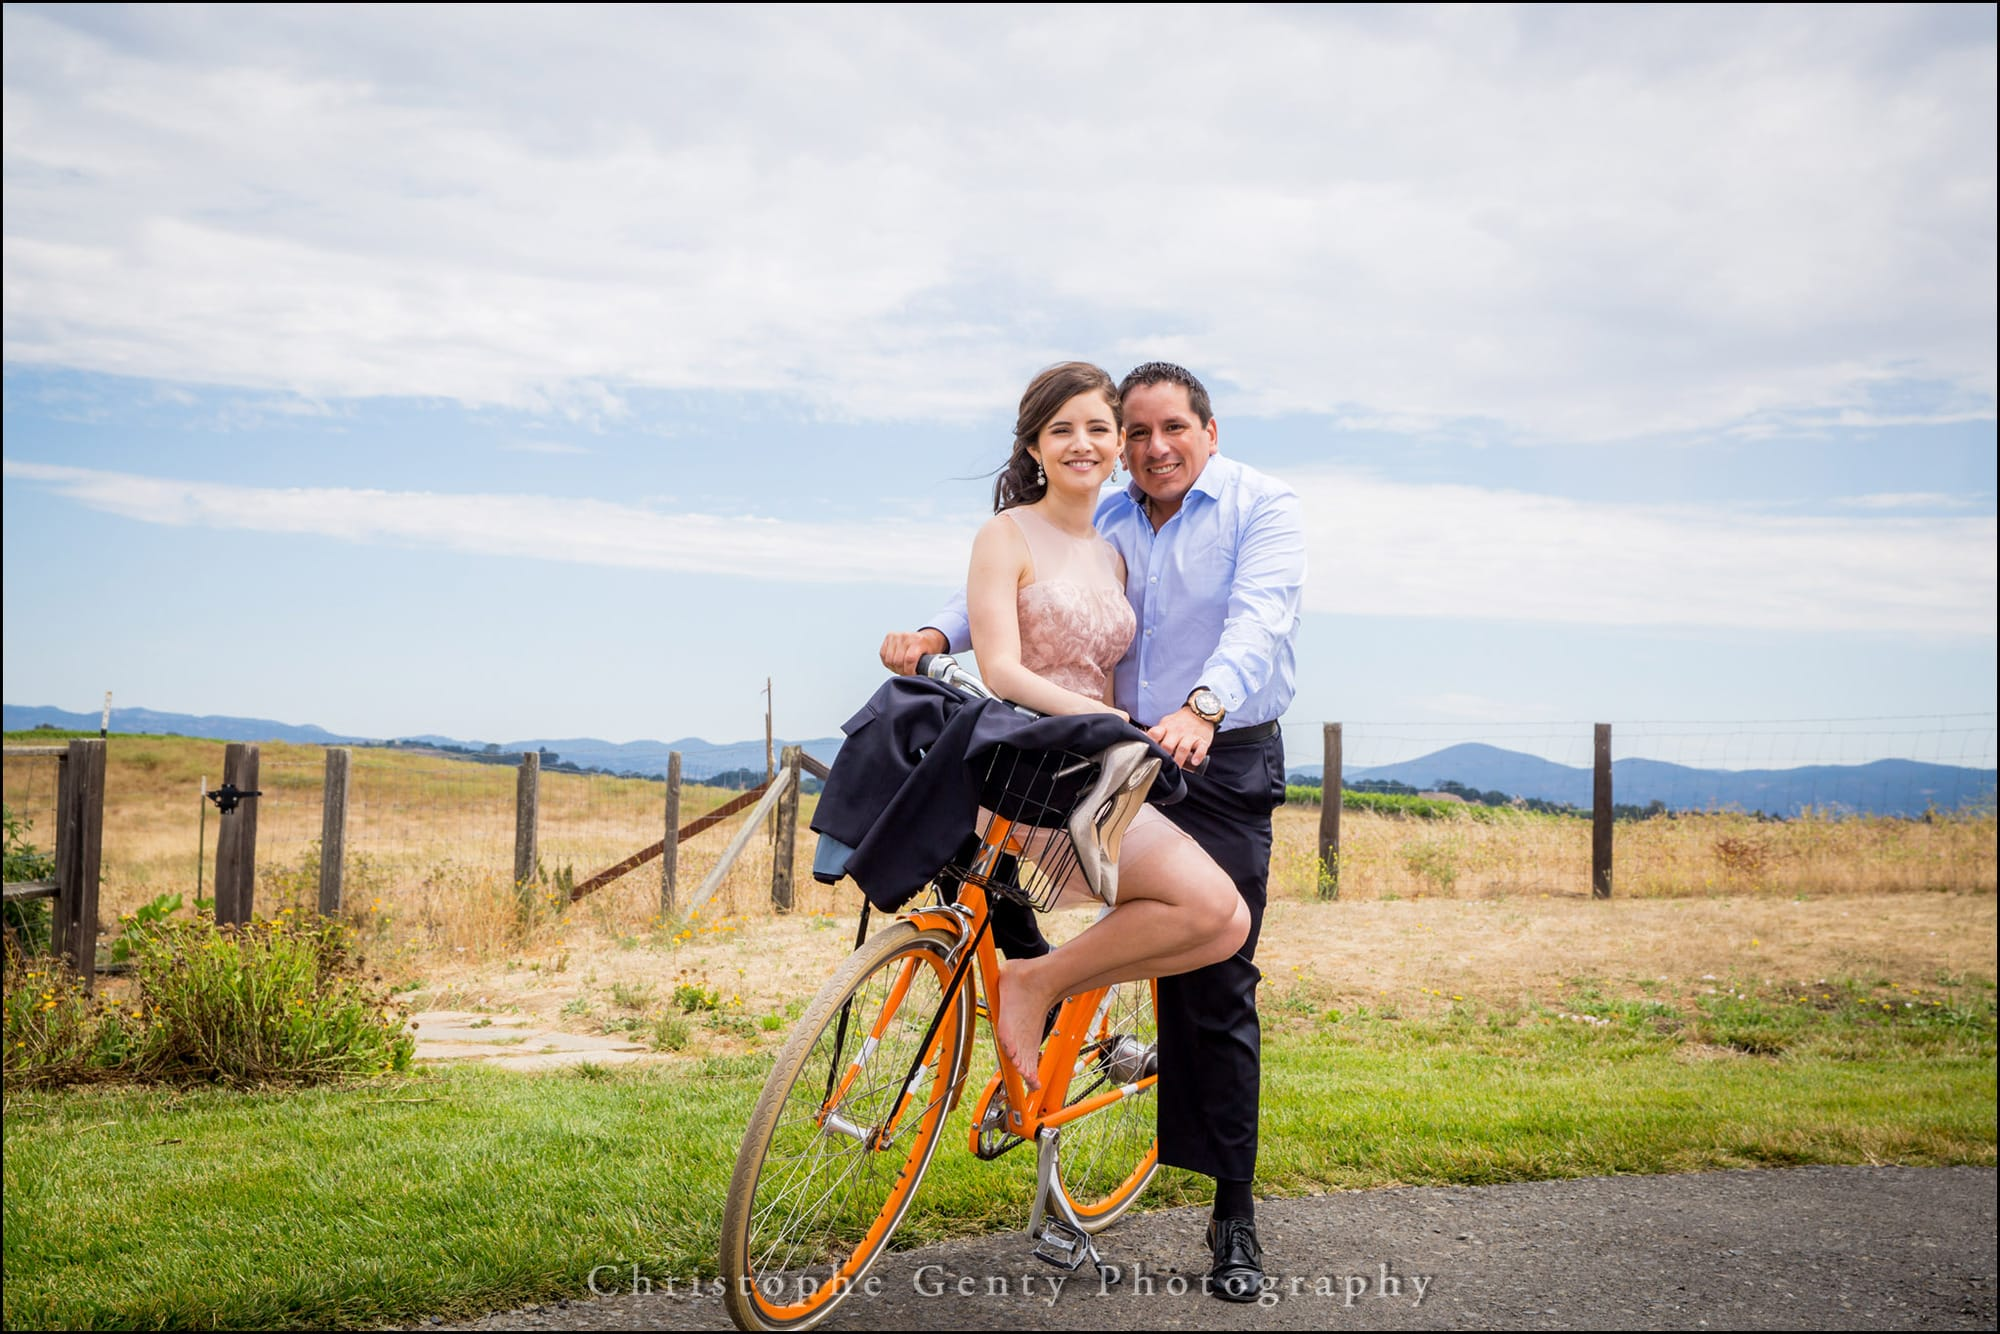 Engagement Photography at The Carneros Inn - Napa, CA